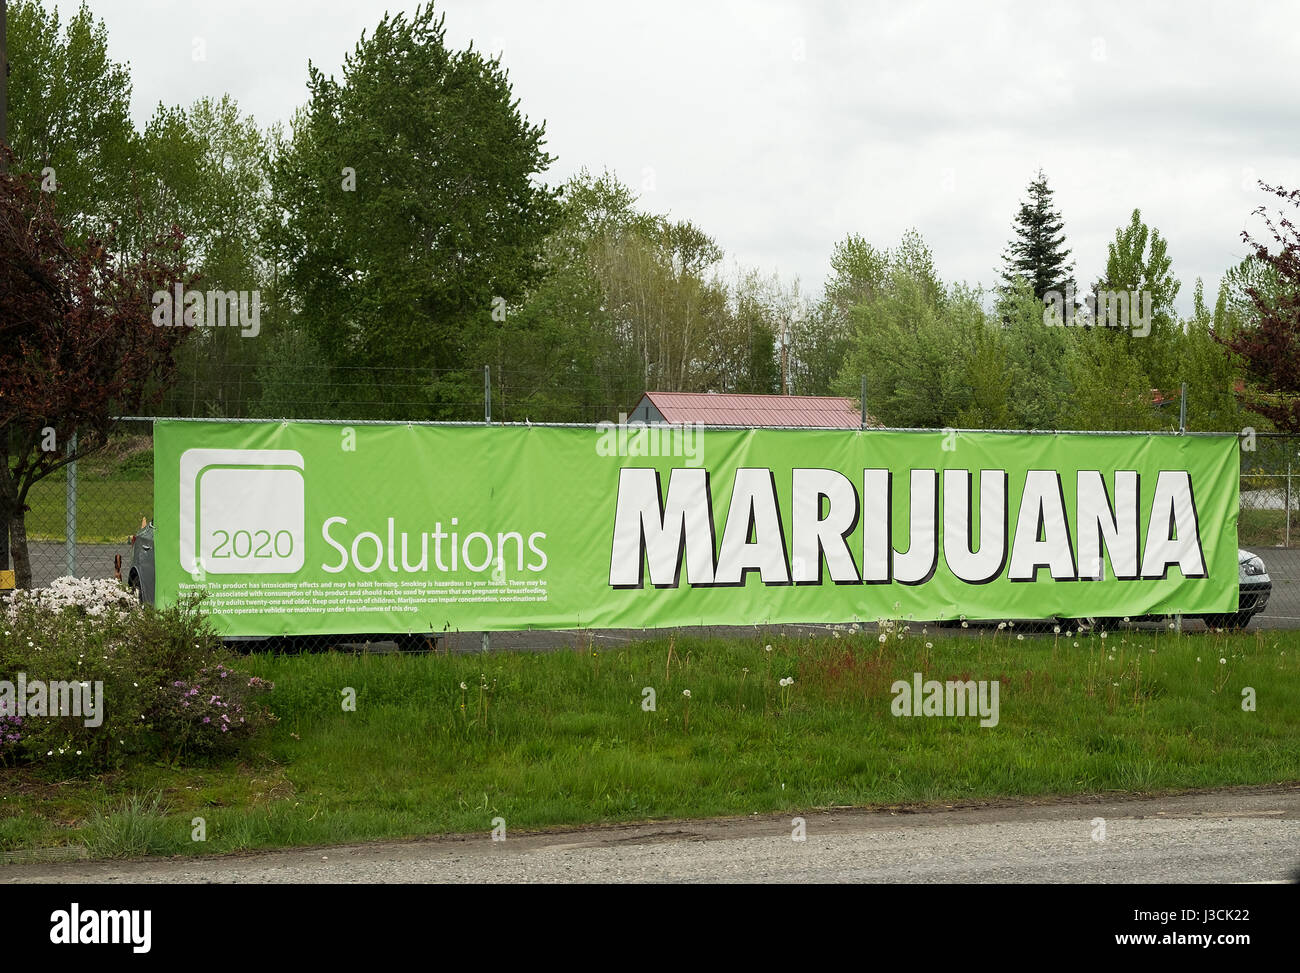 Legal marijuana and canabis store signs along the interstate highway, near Bellingham, Washington State, USA. - Stock Image